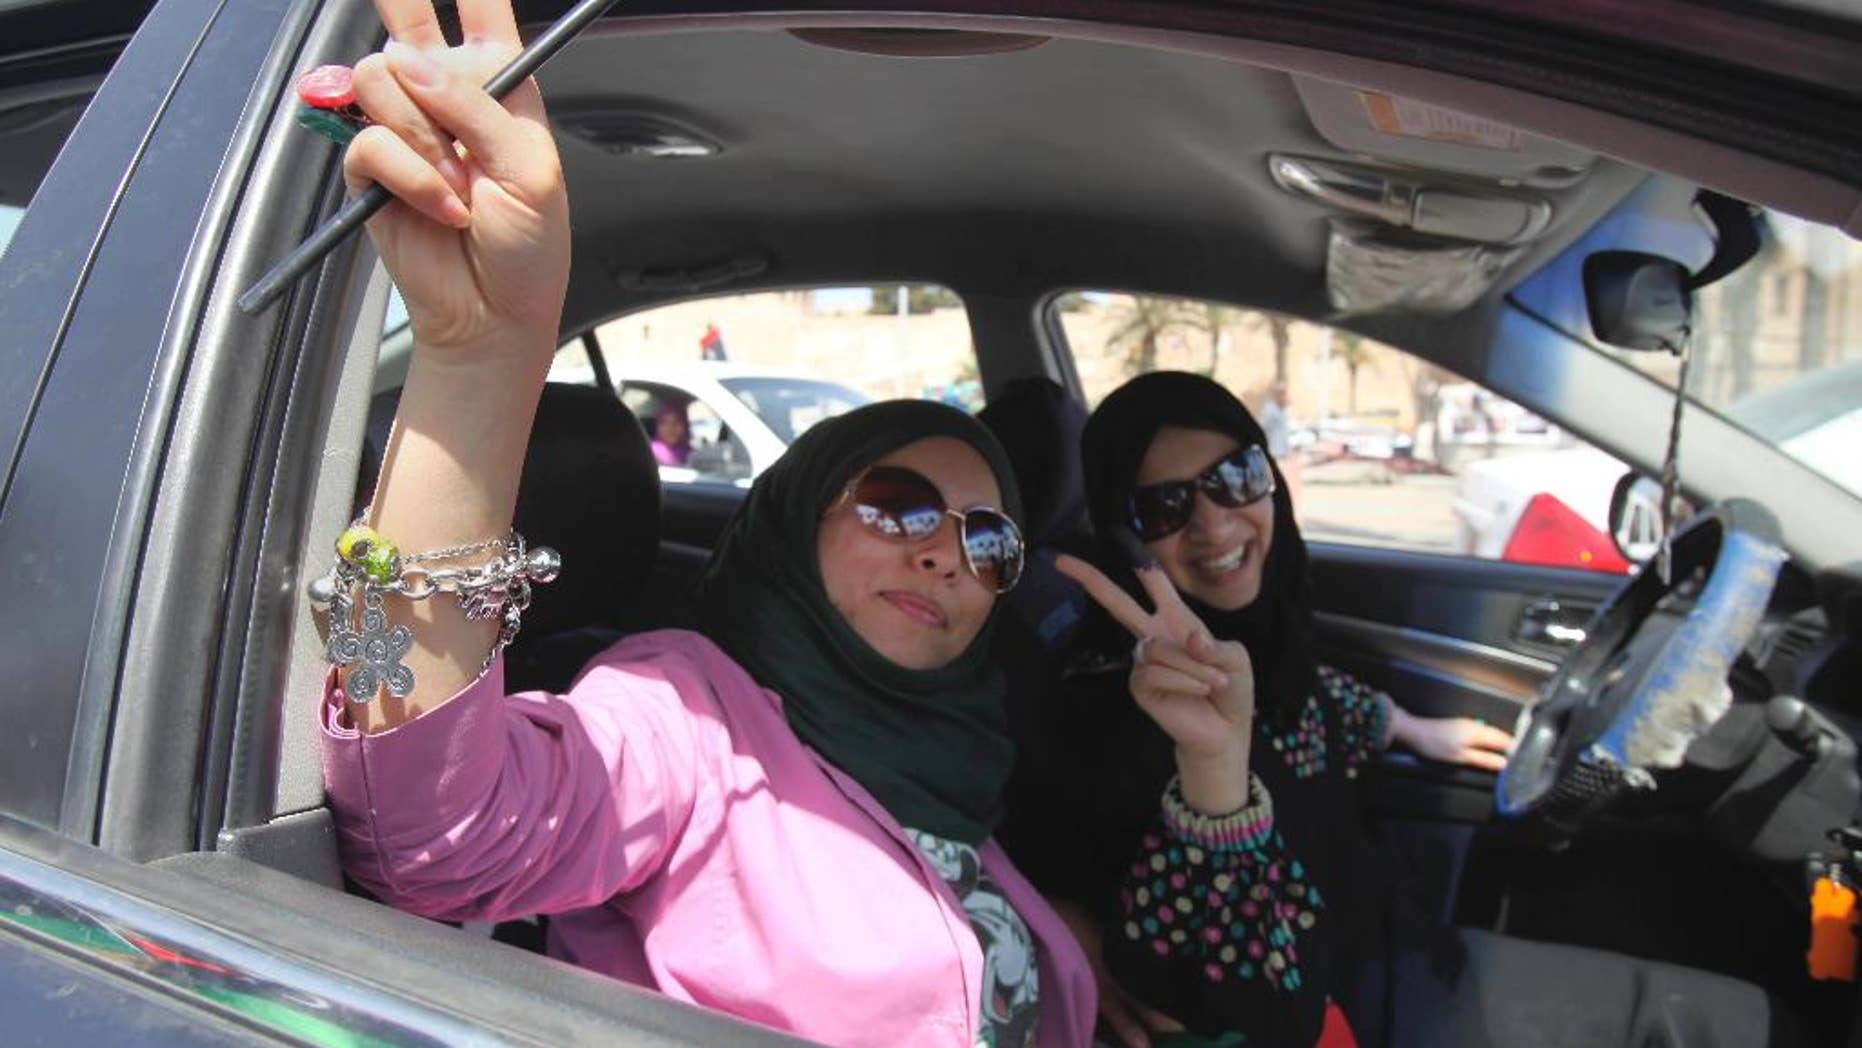 FILE -- In this July 7, 2012 file photo, Libyan women hold up their ink-marked fingers that shows they have voted as they drive in Tripoli, Libya. Eastern Libyan military authorities issued a ban Thursday, Feb. 16, 2017, on women from traveling outside the country without a male guardian, sparking mockery. The decision was issued by the Libyan Chief of Staff Abdel-Razek al-Nadhouri, the military ruler of eastern Libya. He was appointed by the army chief Khalifa Hifter who is allied with the internationally-recognized parliament. (AP Photo/Abdel Magid Al Fergany, File)